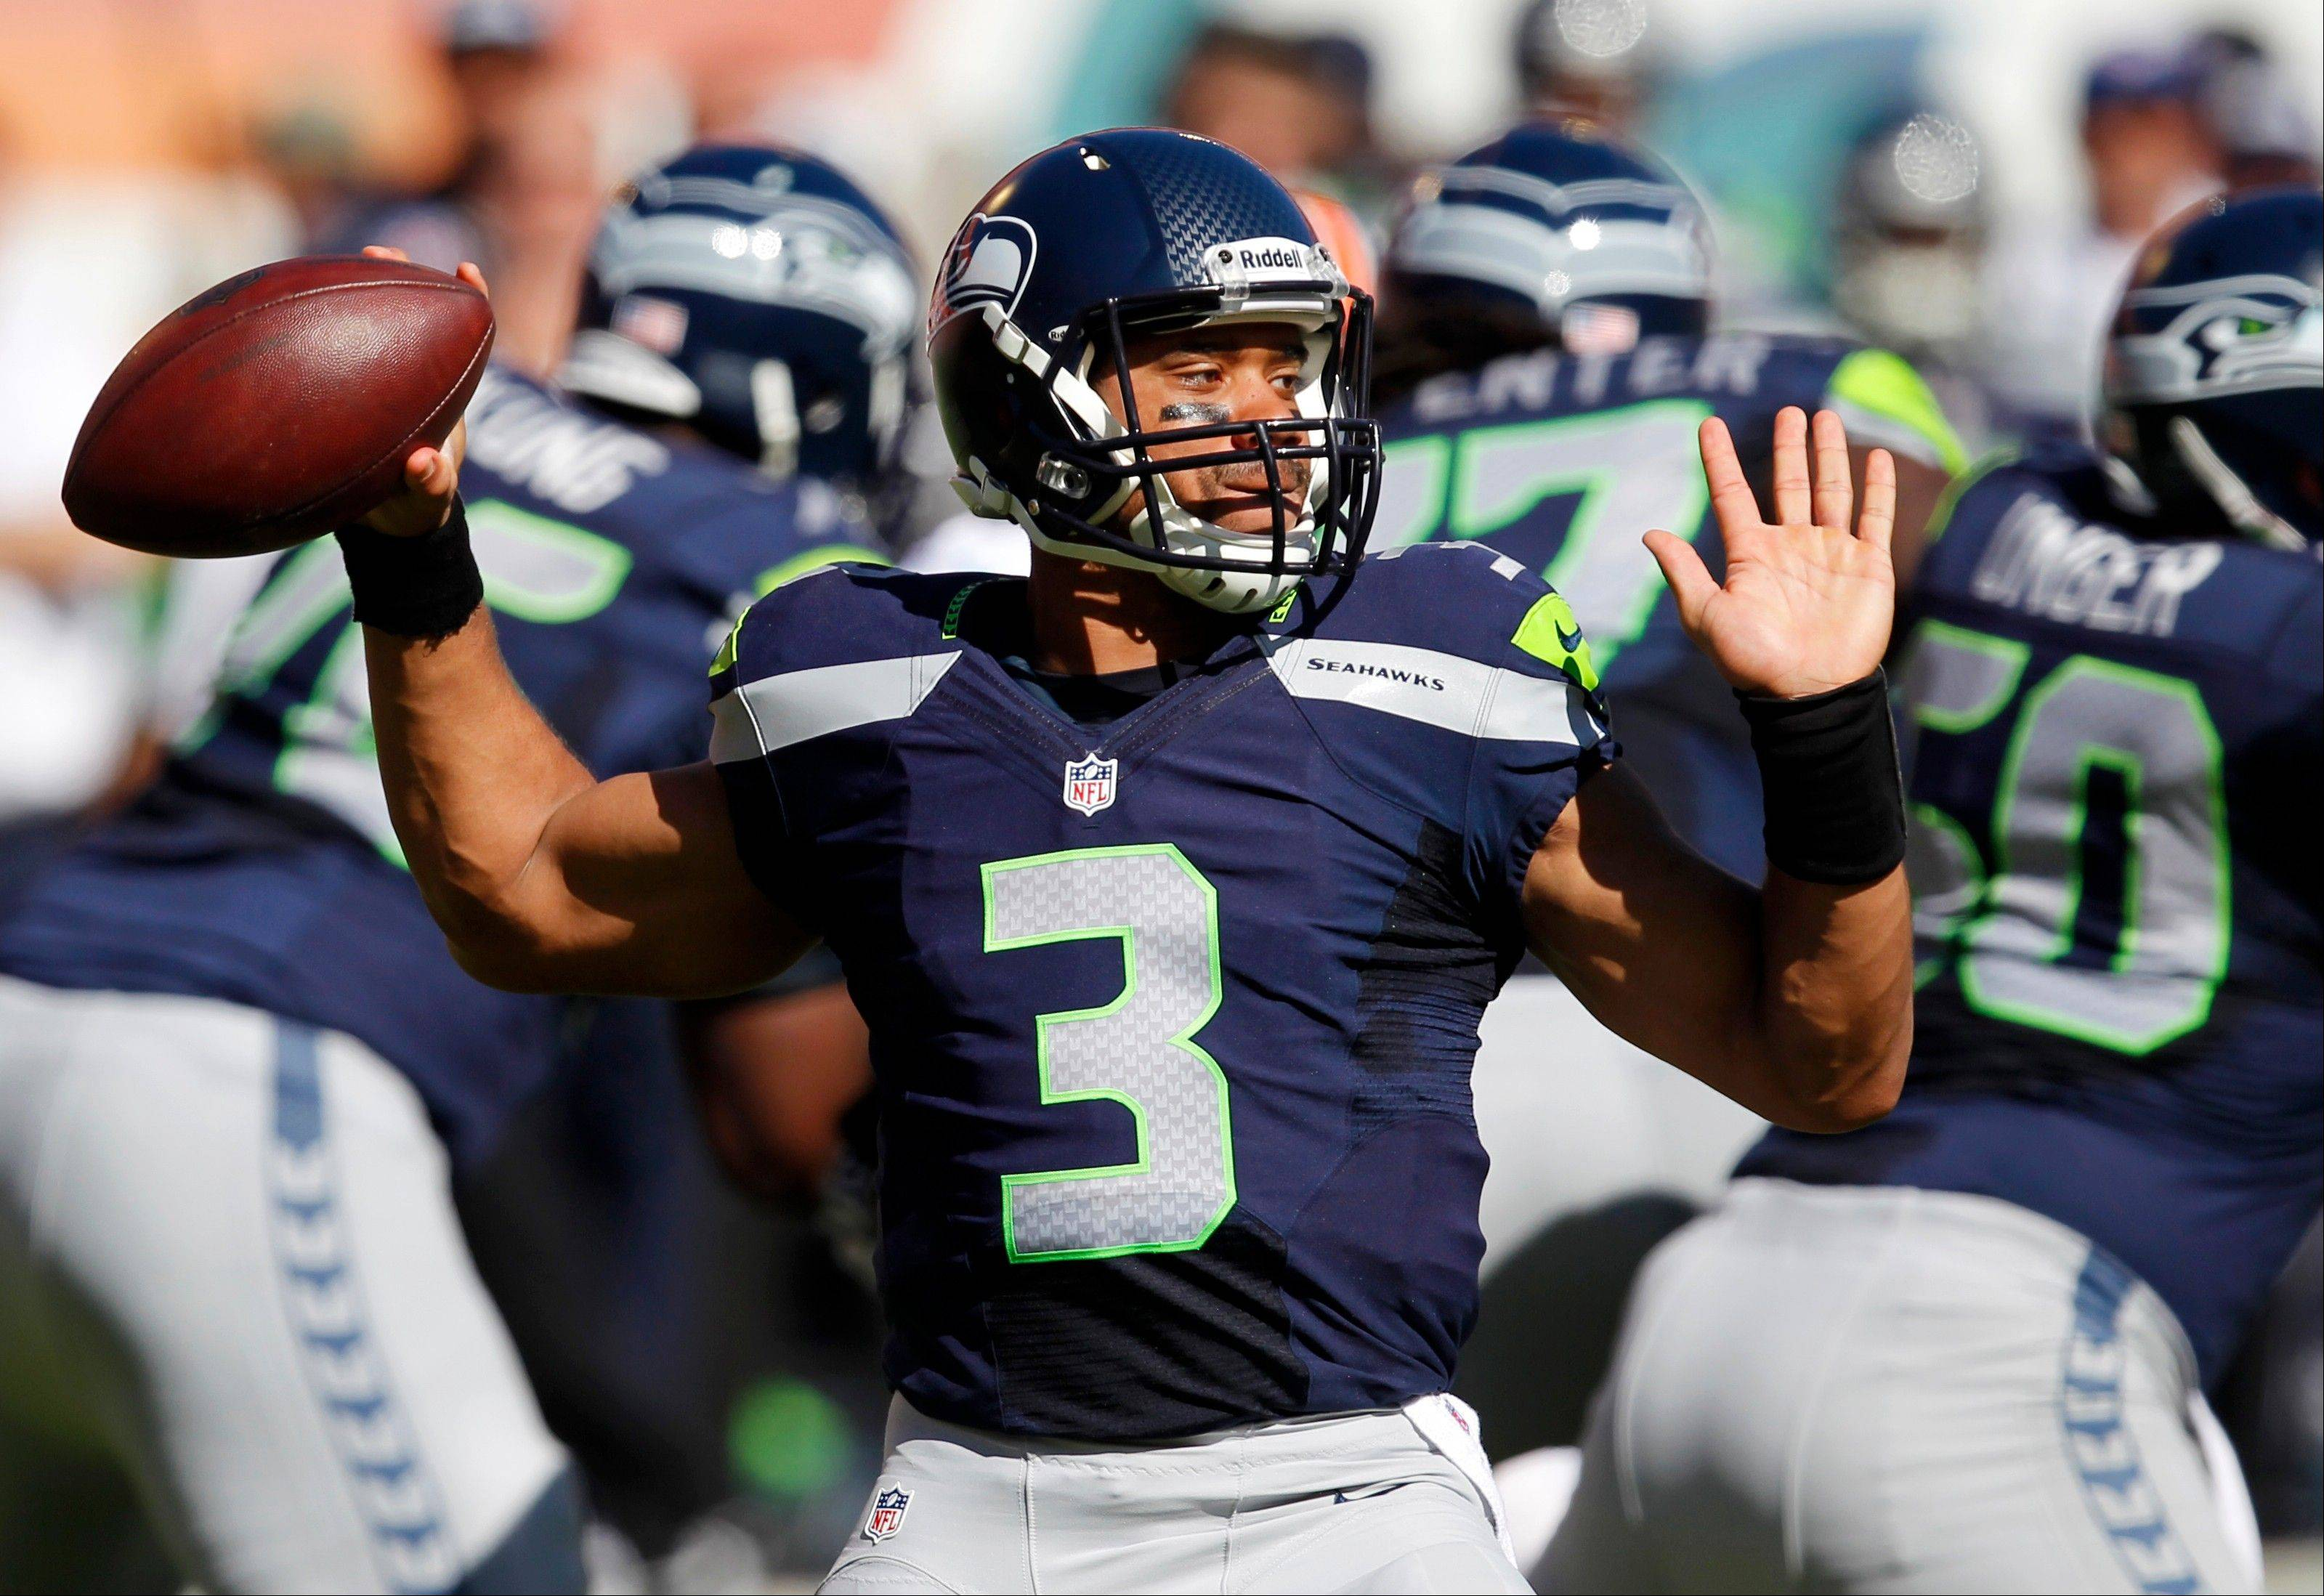 Seahawks rookie quarterback Russell Wilson has thrown for 2,051 yards with 17 TD passes and 8 interceptions in 11 games.